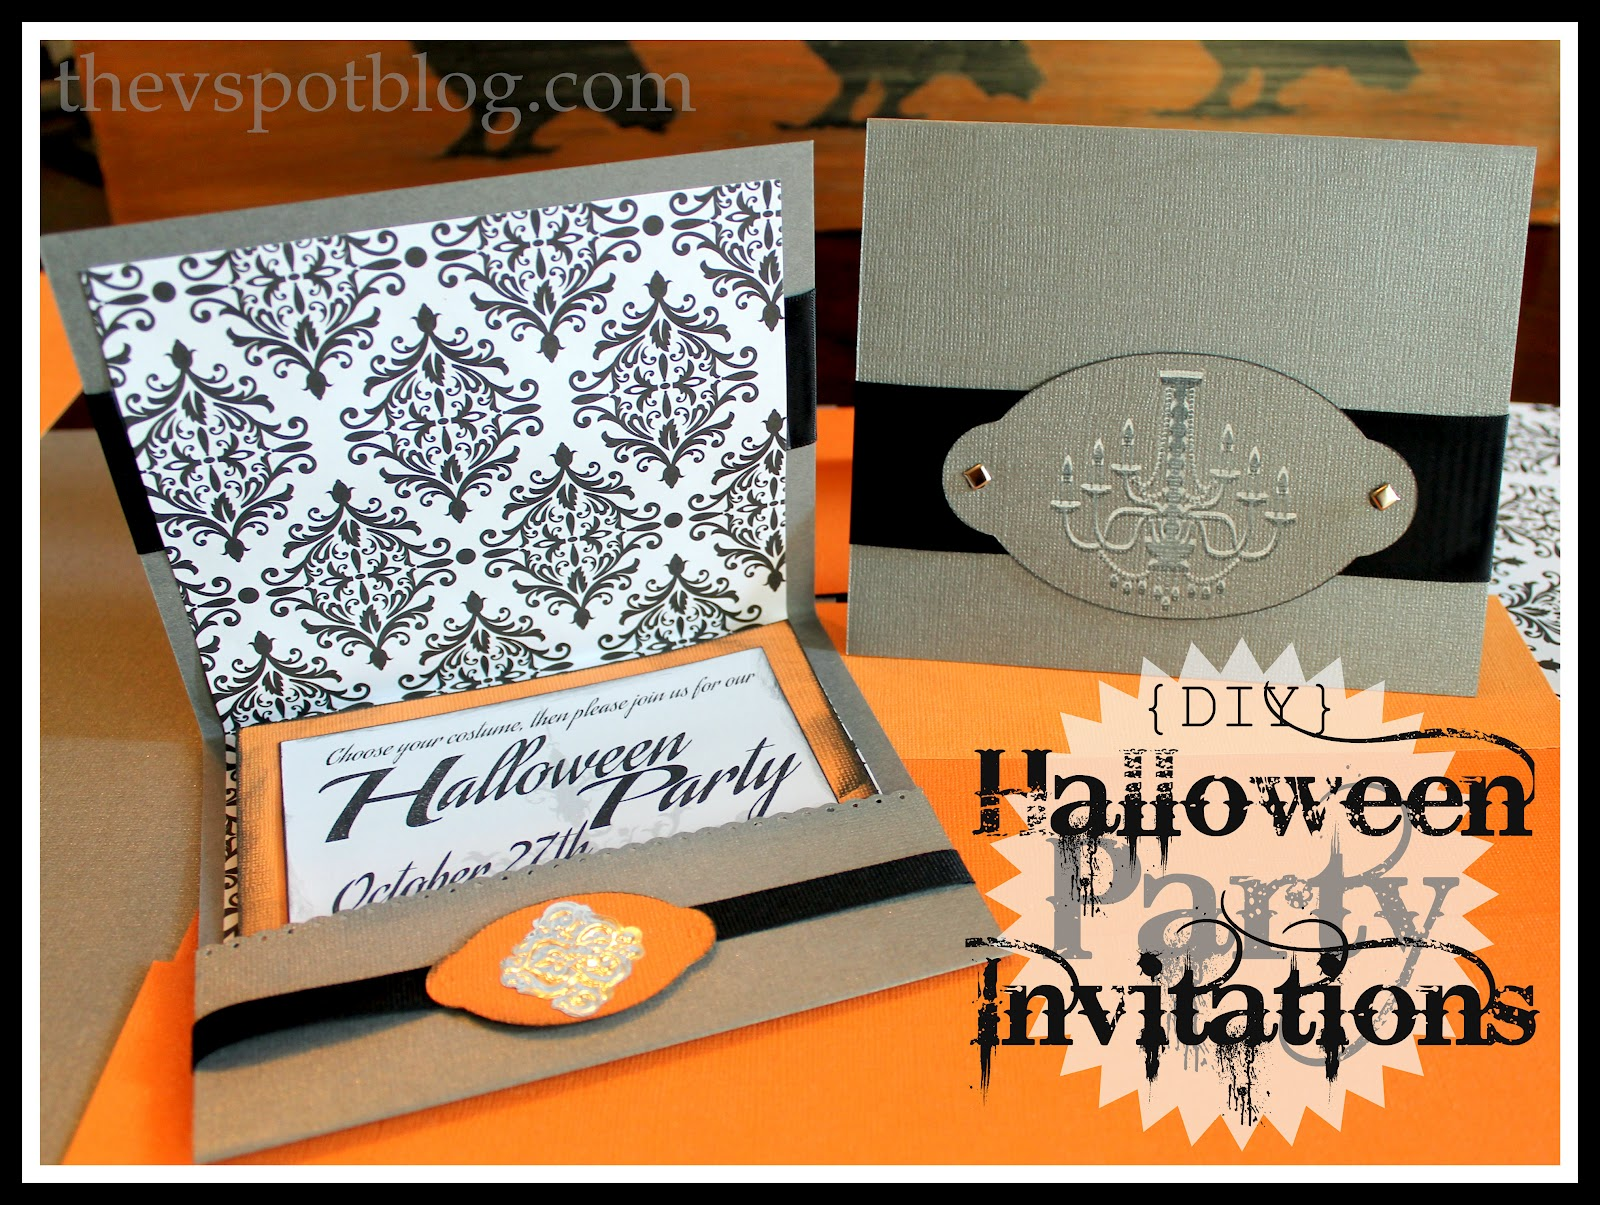 diy halloween party invitations for the non scrapbooking non paper